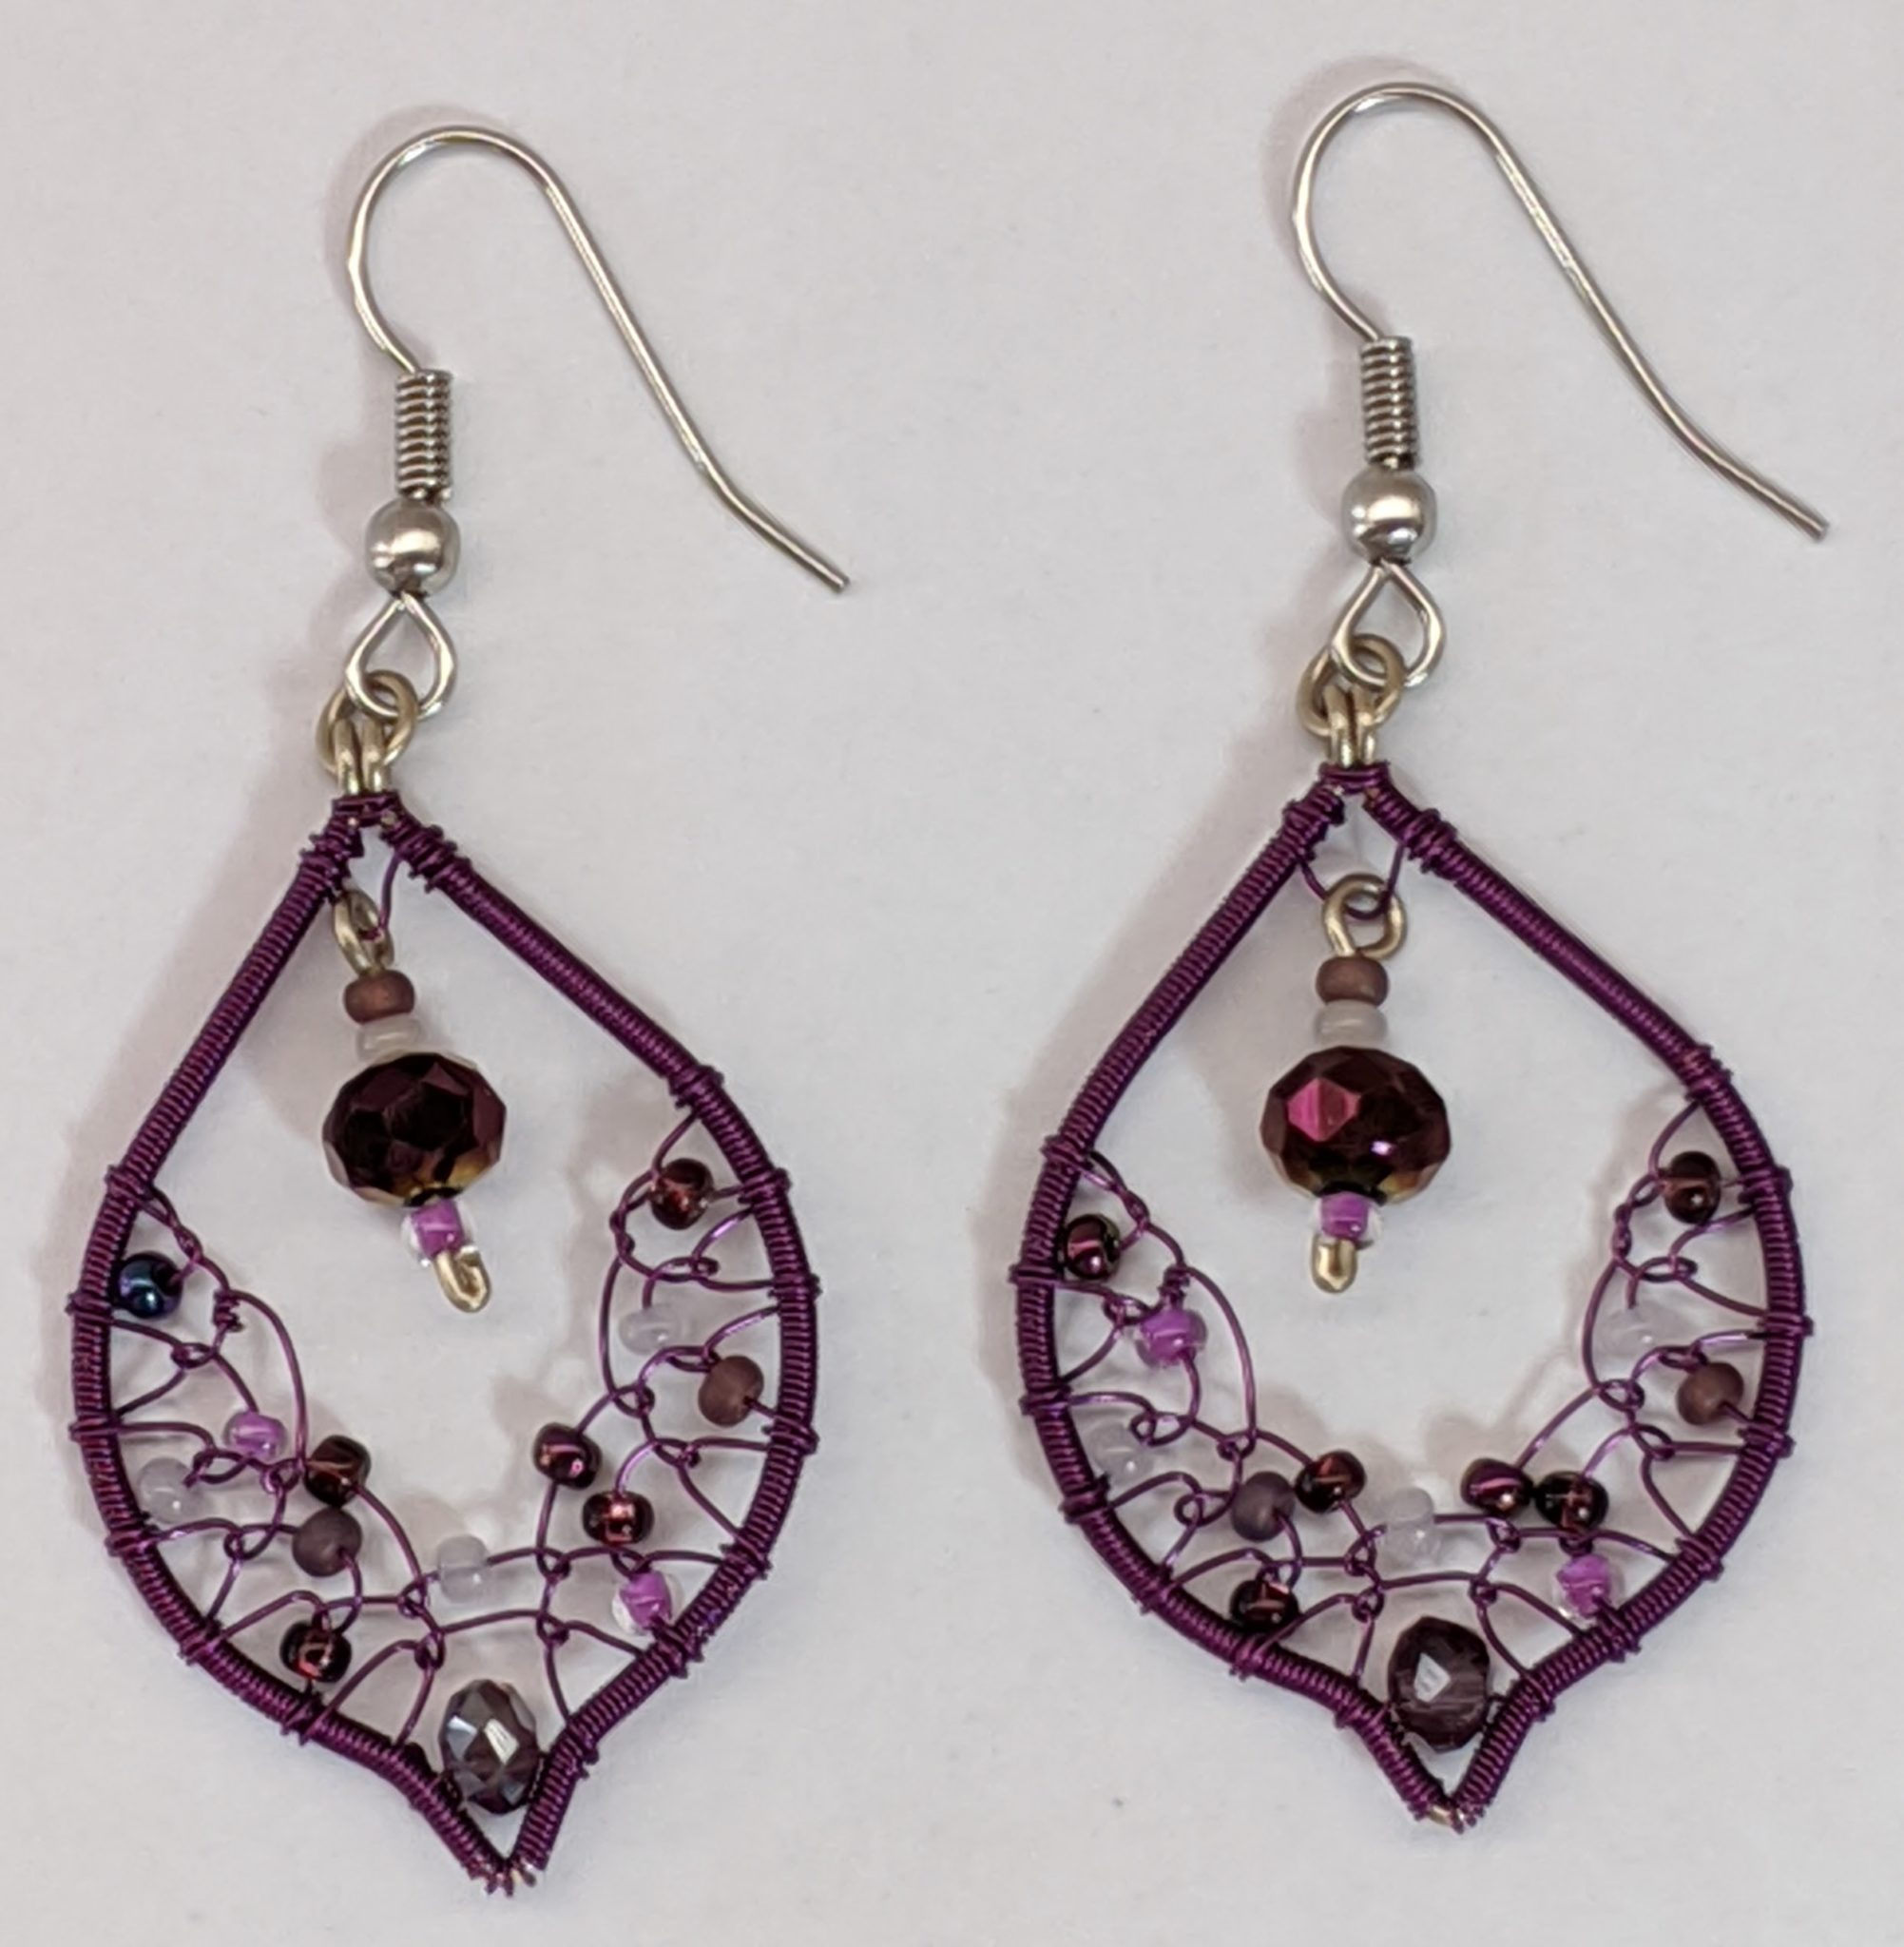 Arabian Nights Earrings - Purples